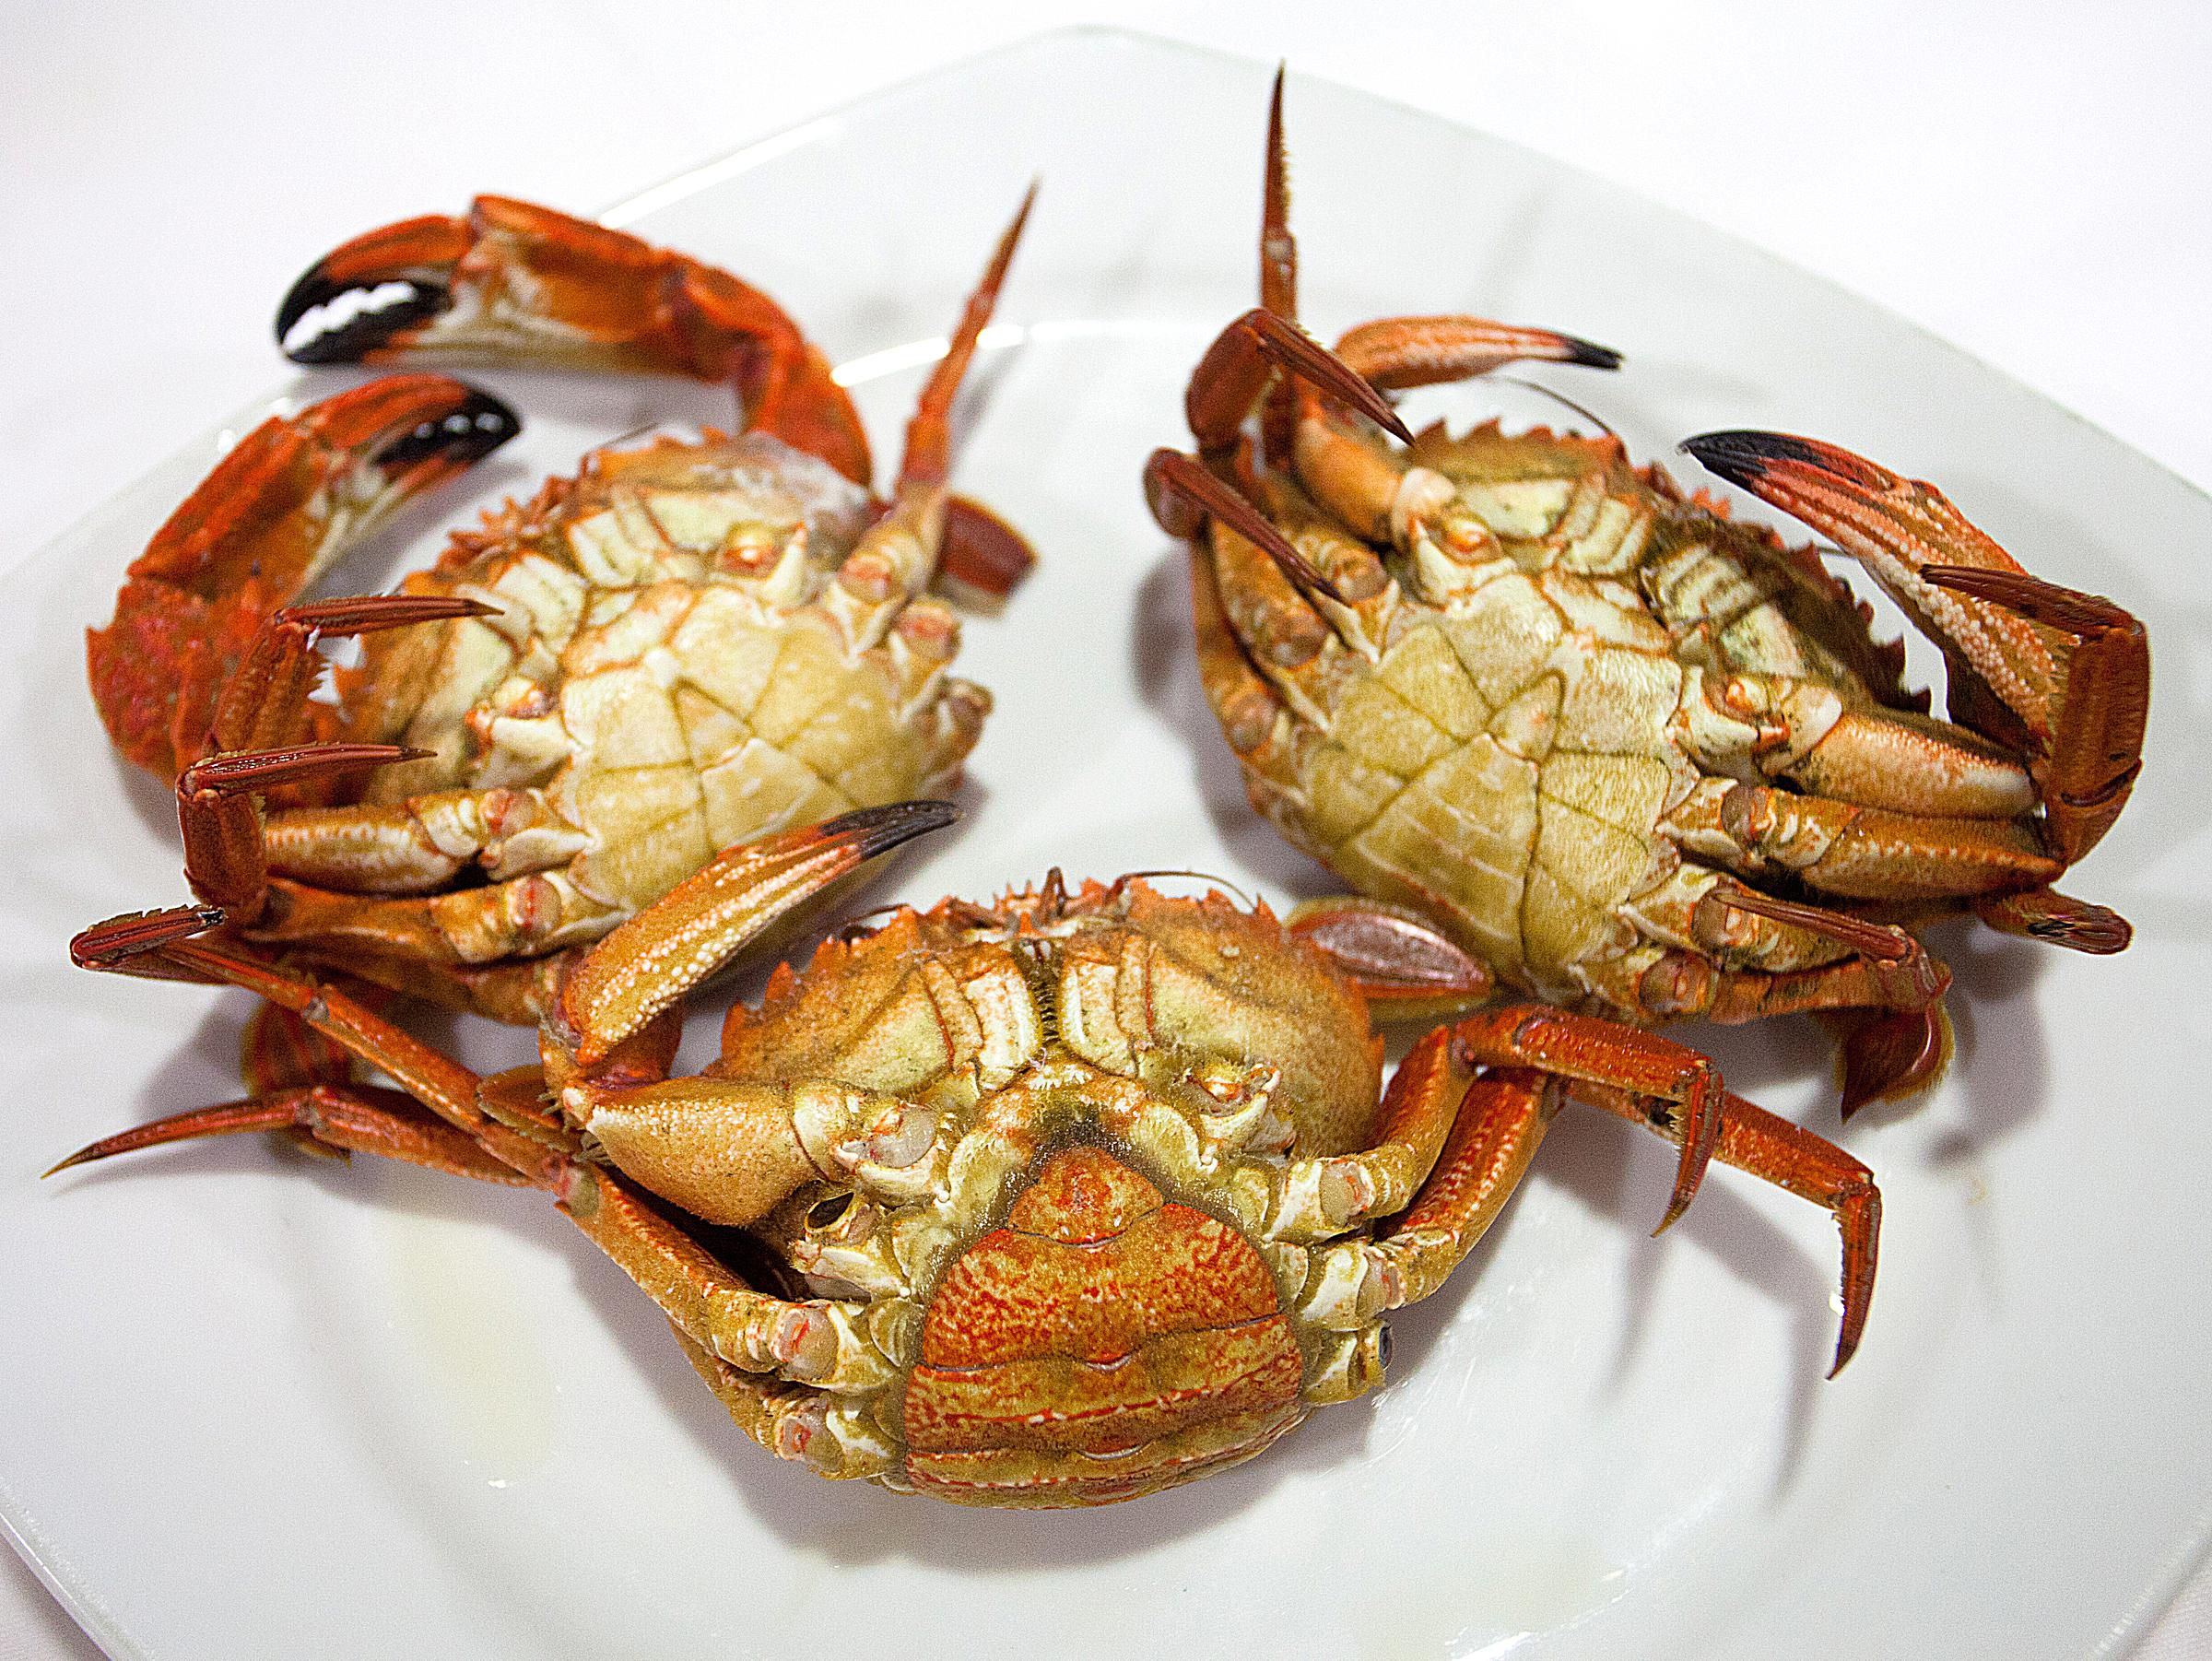 why do some recipes call for she crabs